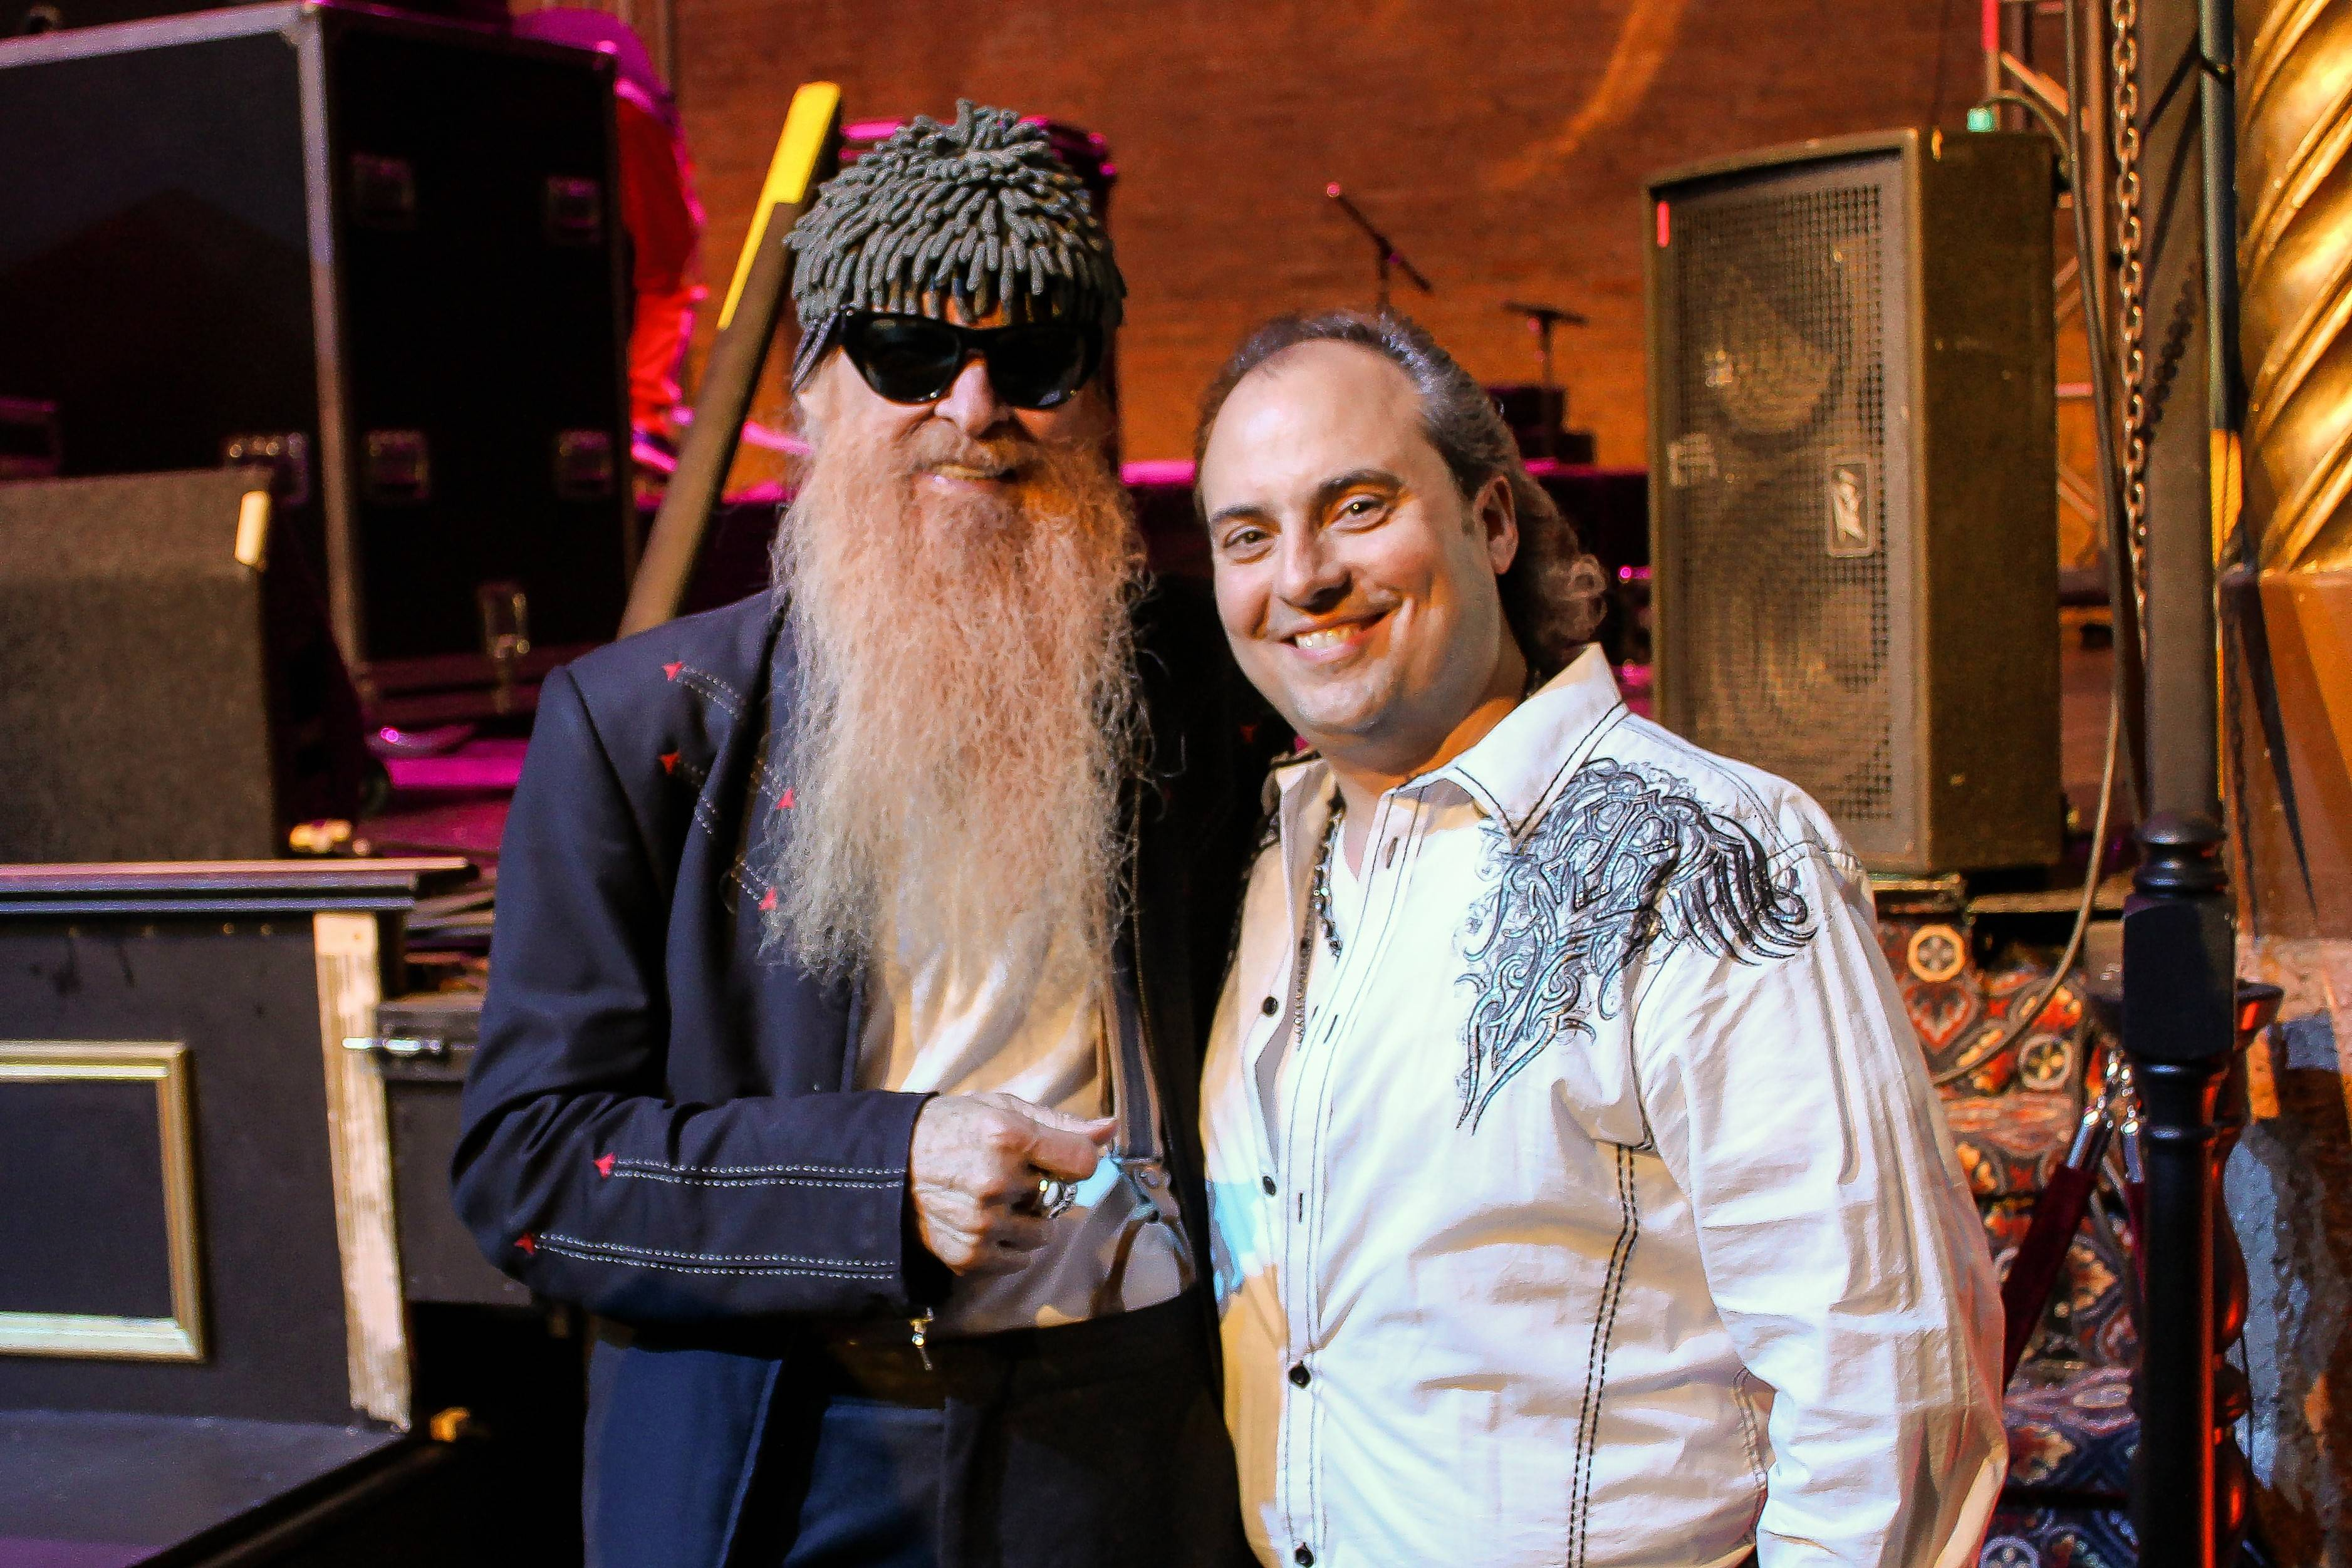 ZZ top founder Billy Gibbons and the Arcada Theatre owner Ron Onesti spent a late night after the guitarist's recent solo show.